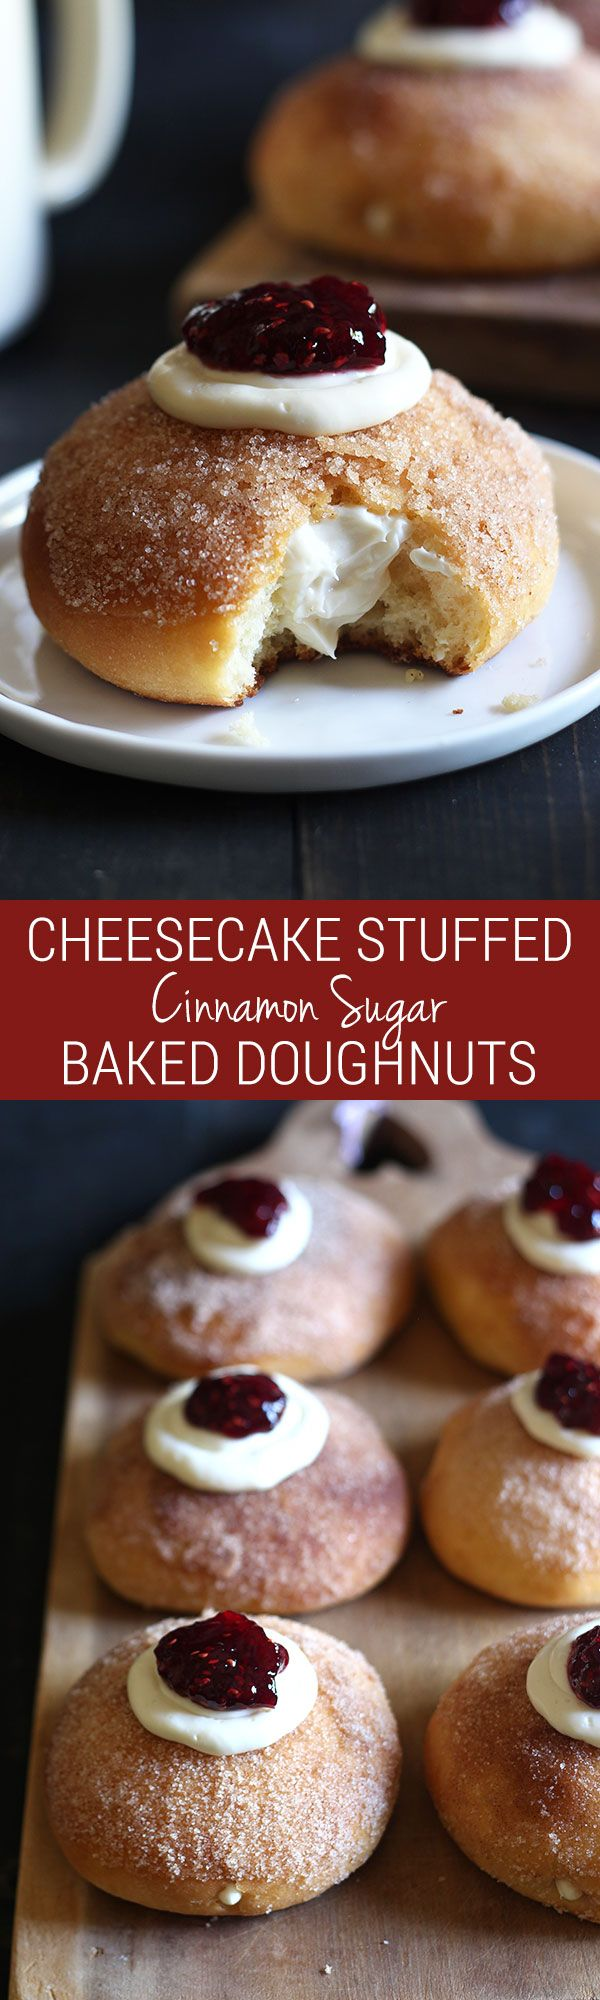 Cheesecake Stuffed Baked Doughnuts feature a fluffy yeast-raised baked doughnut coated in cinnamon sugar, stuffed with sweetened cream cheese, and topped with a dollop of raspberry jam.